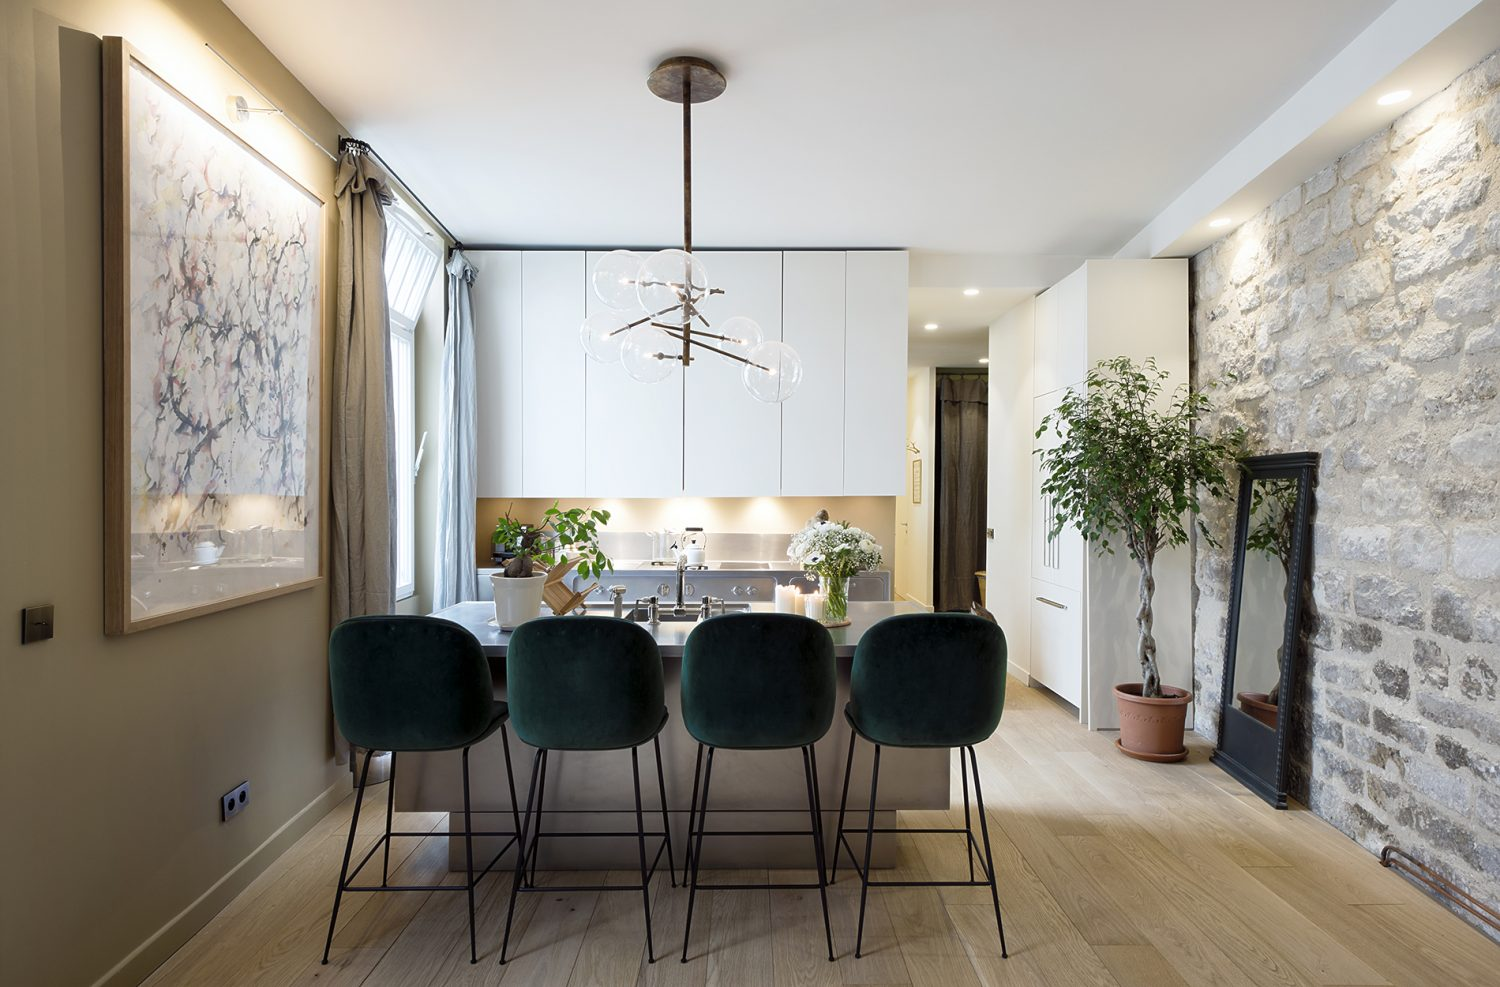 10surdix Project by 10surdix features Iconic Mid-century Modern Furnishings Project by 10surdix features Iconic Mid century Modern Furnishings 6